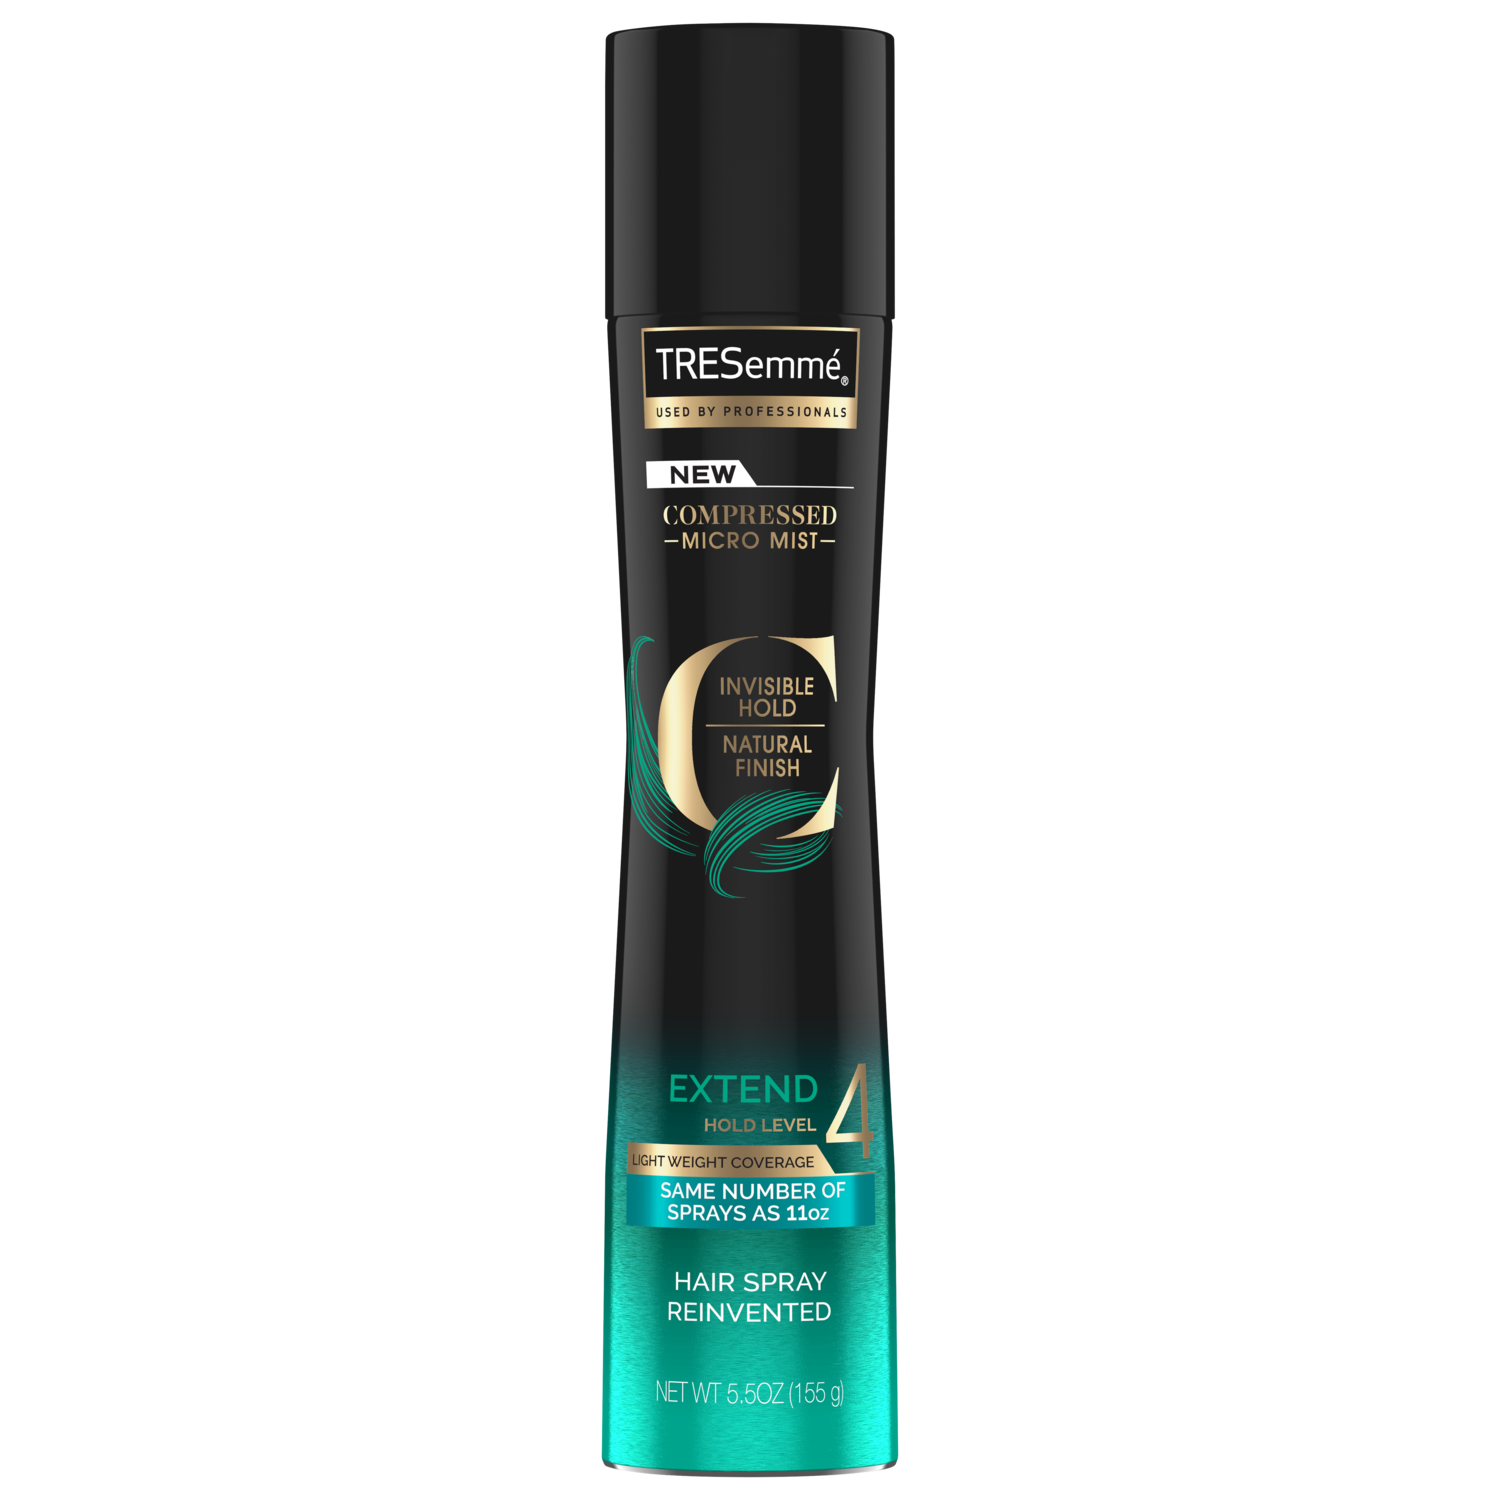 Want Lasting Hold And A Style That Moves With You Tresemme Compressed Micro Mist Hair Sprays H In 2020 Best Hairspray Drugstore Hair Products Best Hair Care Products